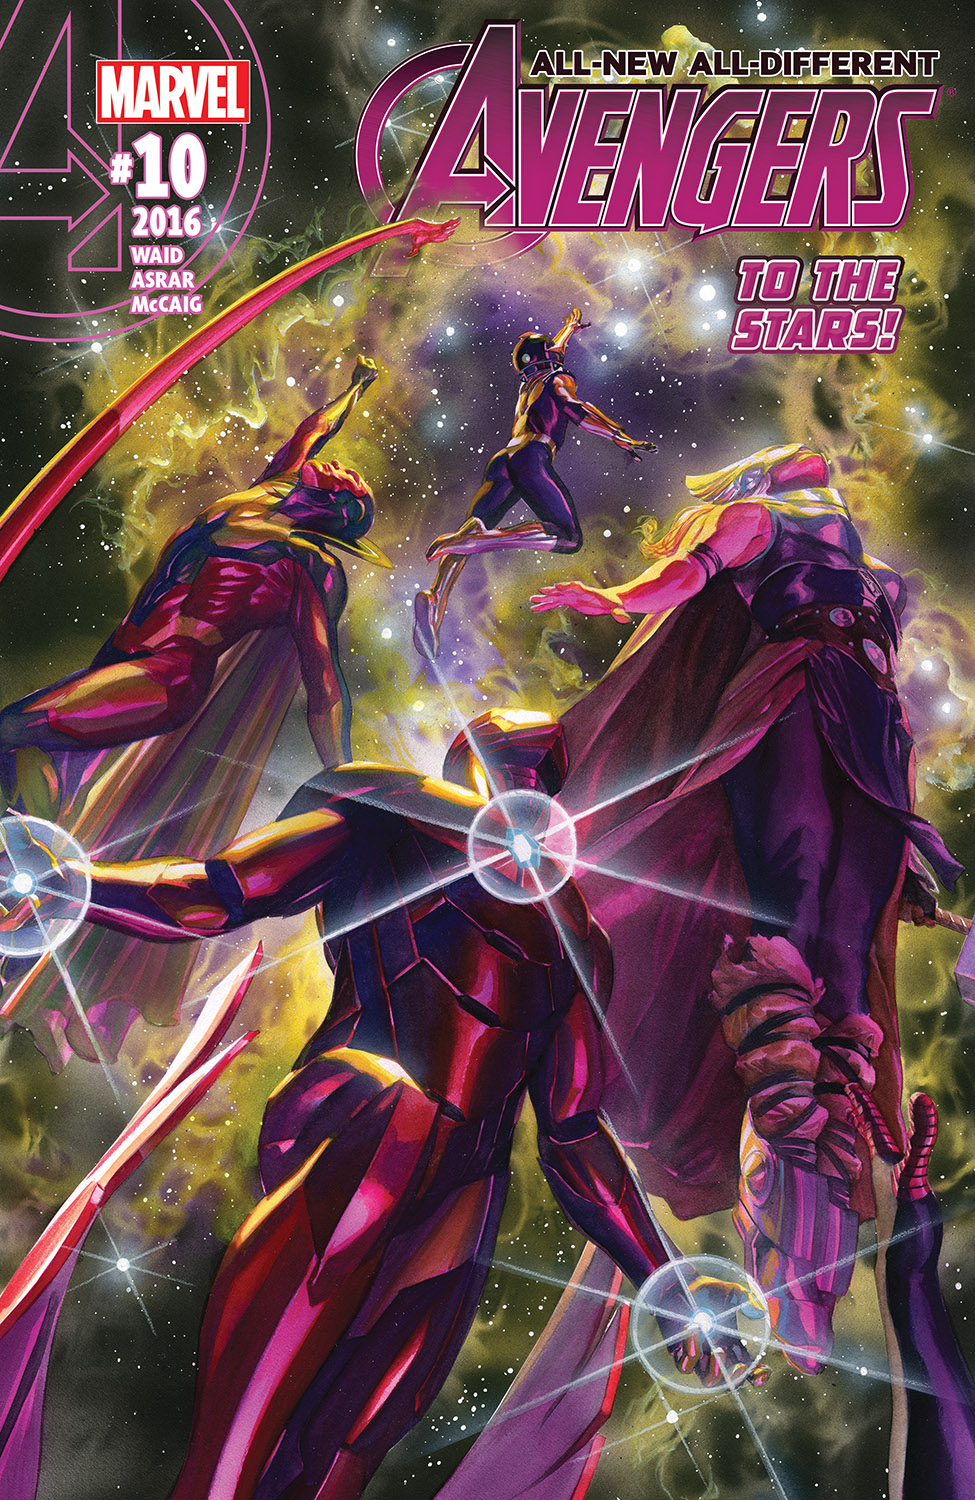 All-New, All-Different Avengers (2015) #10